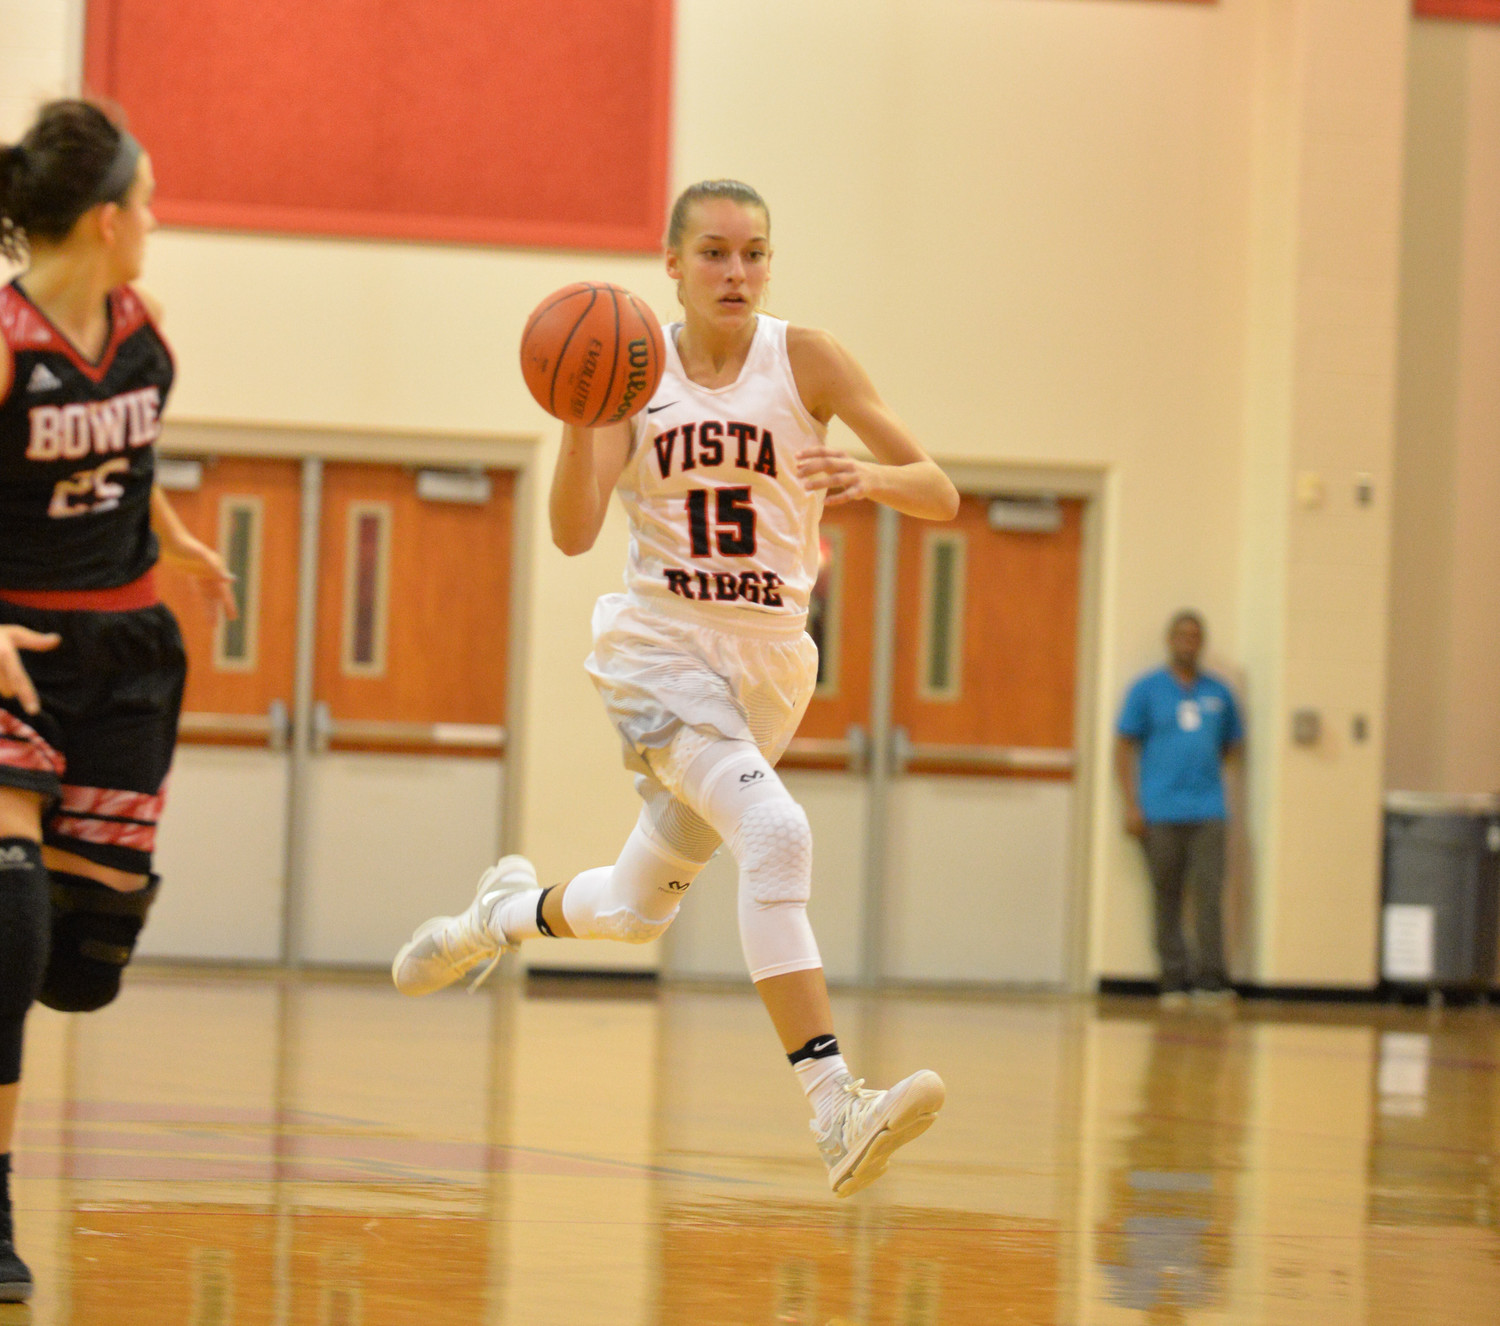 Vista Ridge freshman A.J. Marotte has cracked the starting lineup in the early part of the season. The Lady Rangers have six underclassmen playing key roles on the team this year.